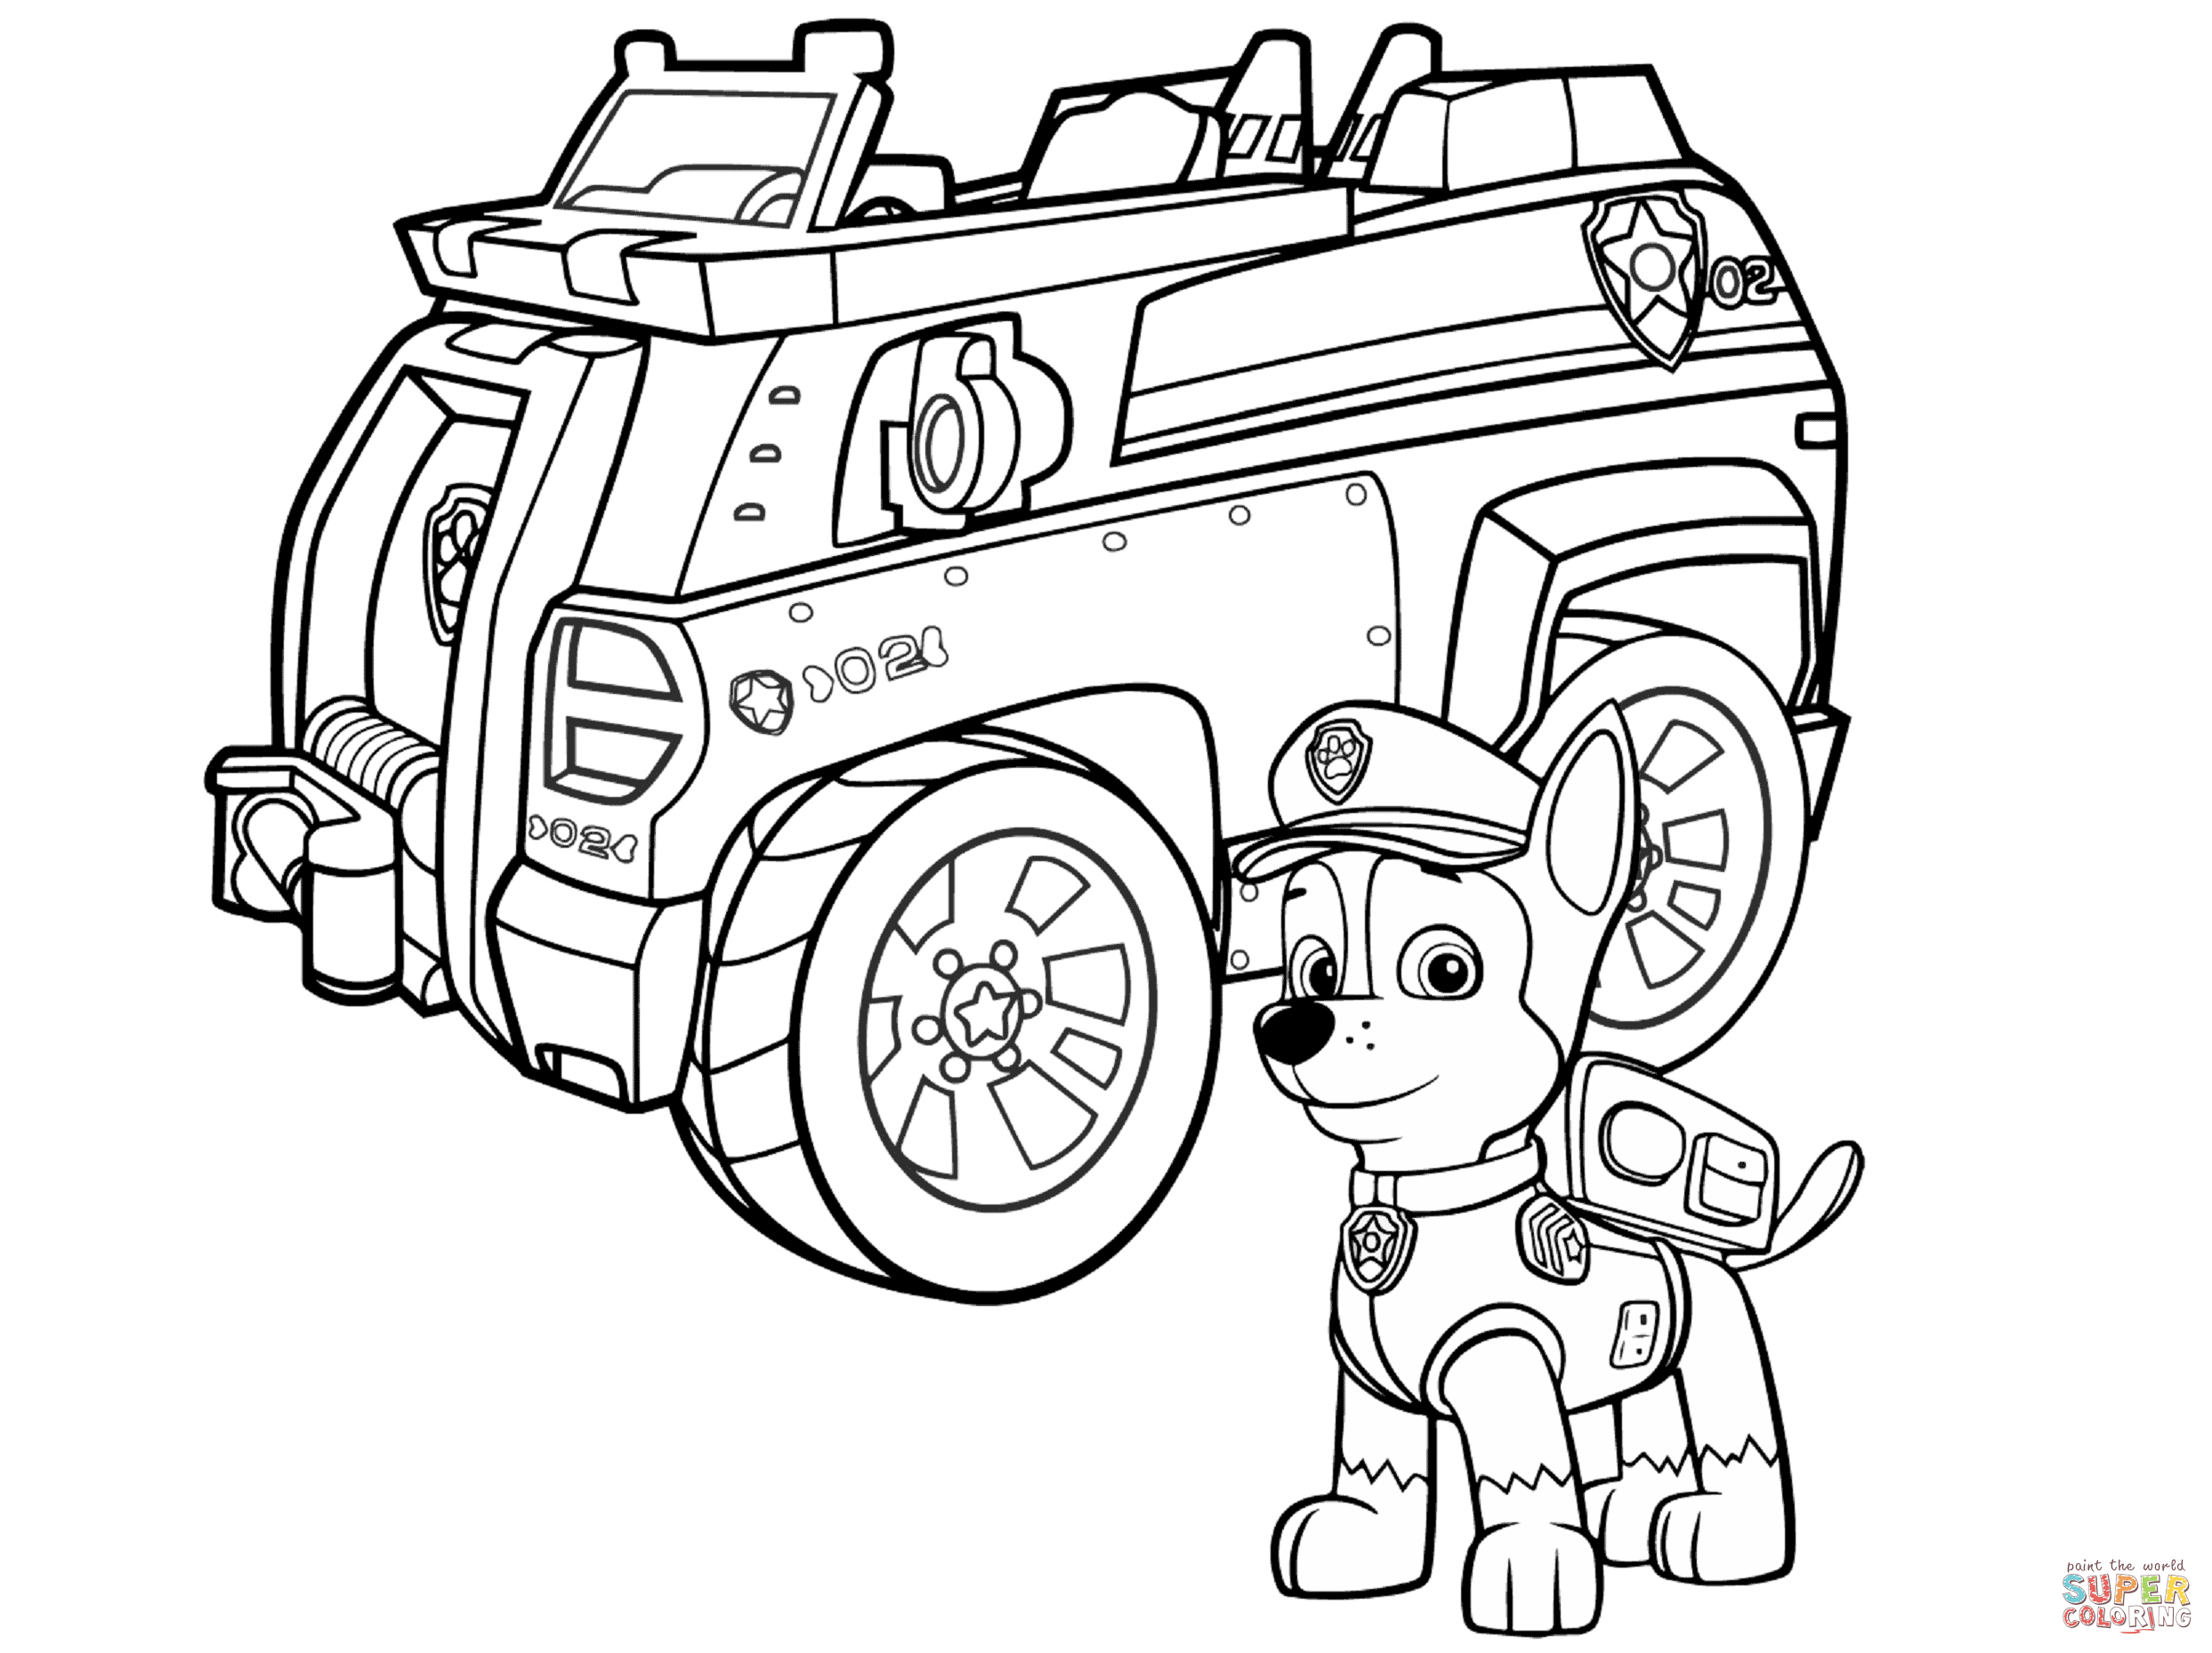 paw patrol boat coloring page free printable paw patrol coloring pages for kids patrol paw page boat coloring